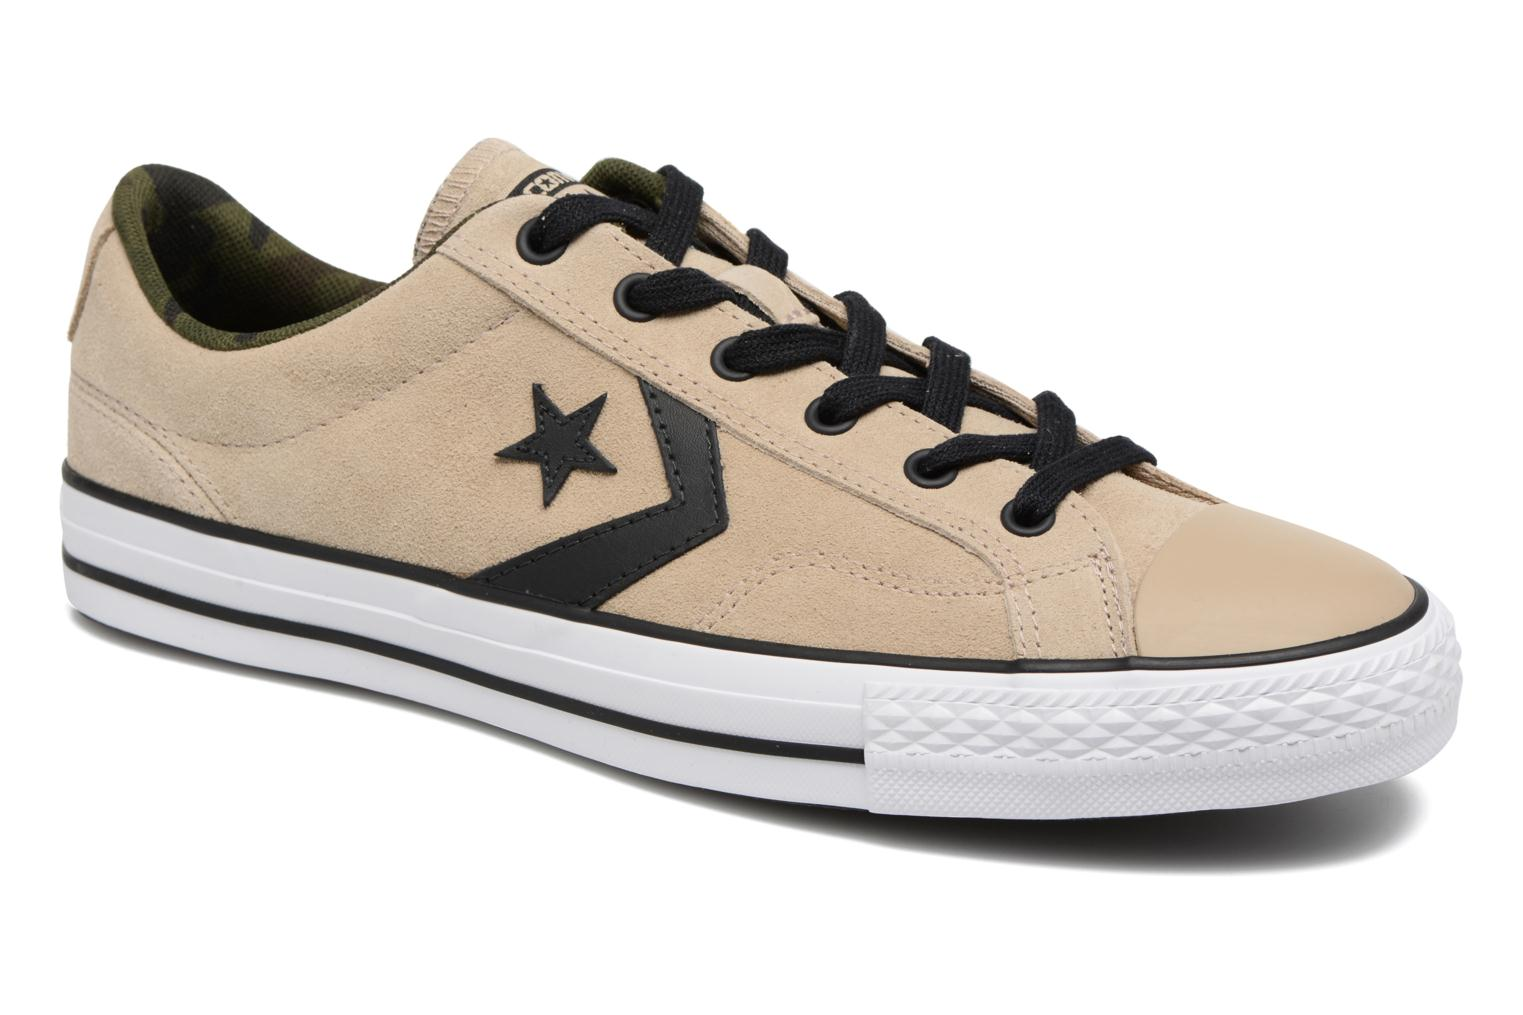 Sneakers Star Player Camo Suede Ox by ConverseConverseBeigePaar schoenen - Sneakers88875526840740Nubuck